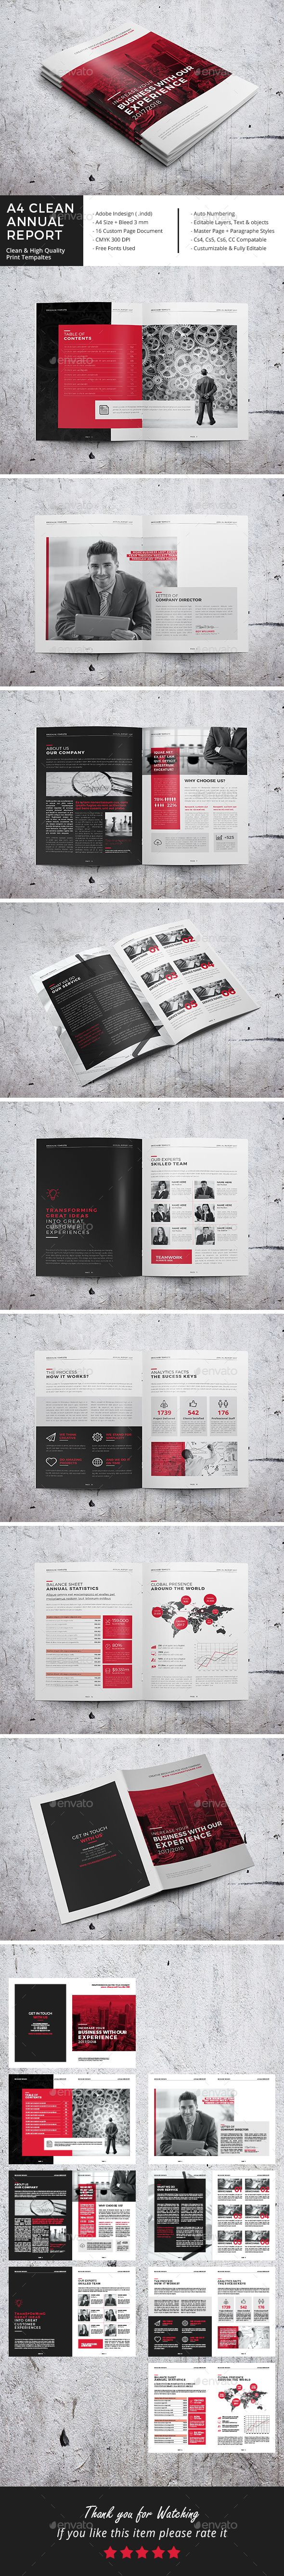 Clean #Annual Report 16 Pages - Corporate #Brochures Download here: https://graphicriver.net/item/clean-annual-report-16-pages/20383686?ref=alena994